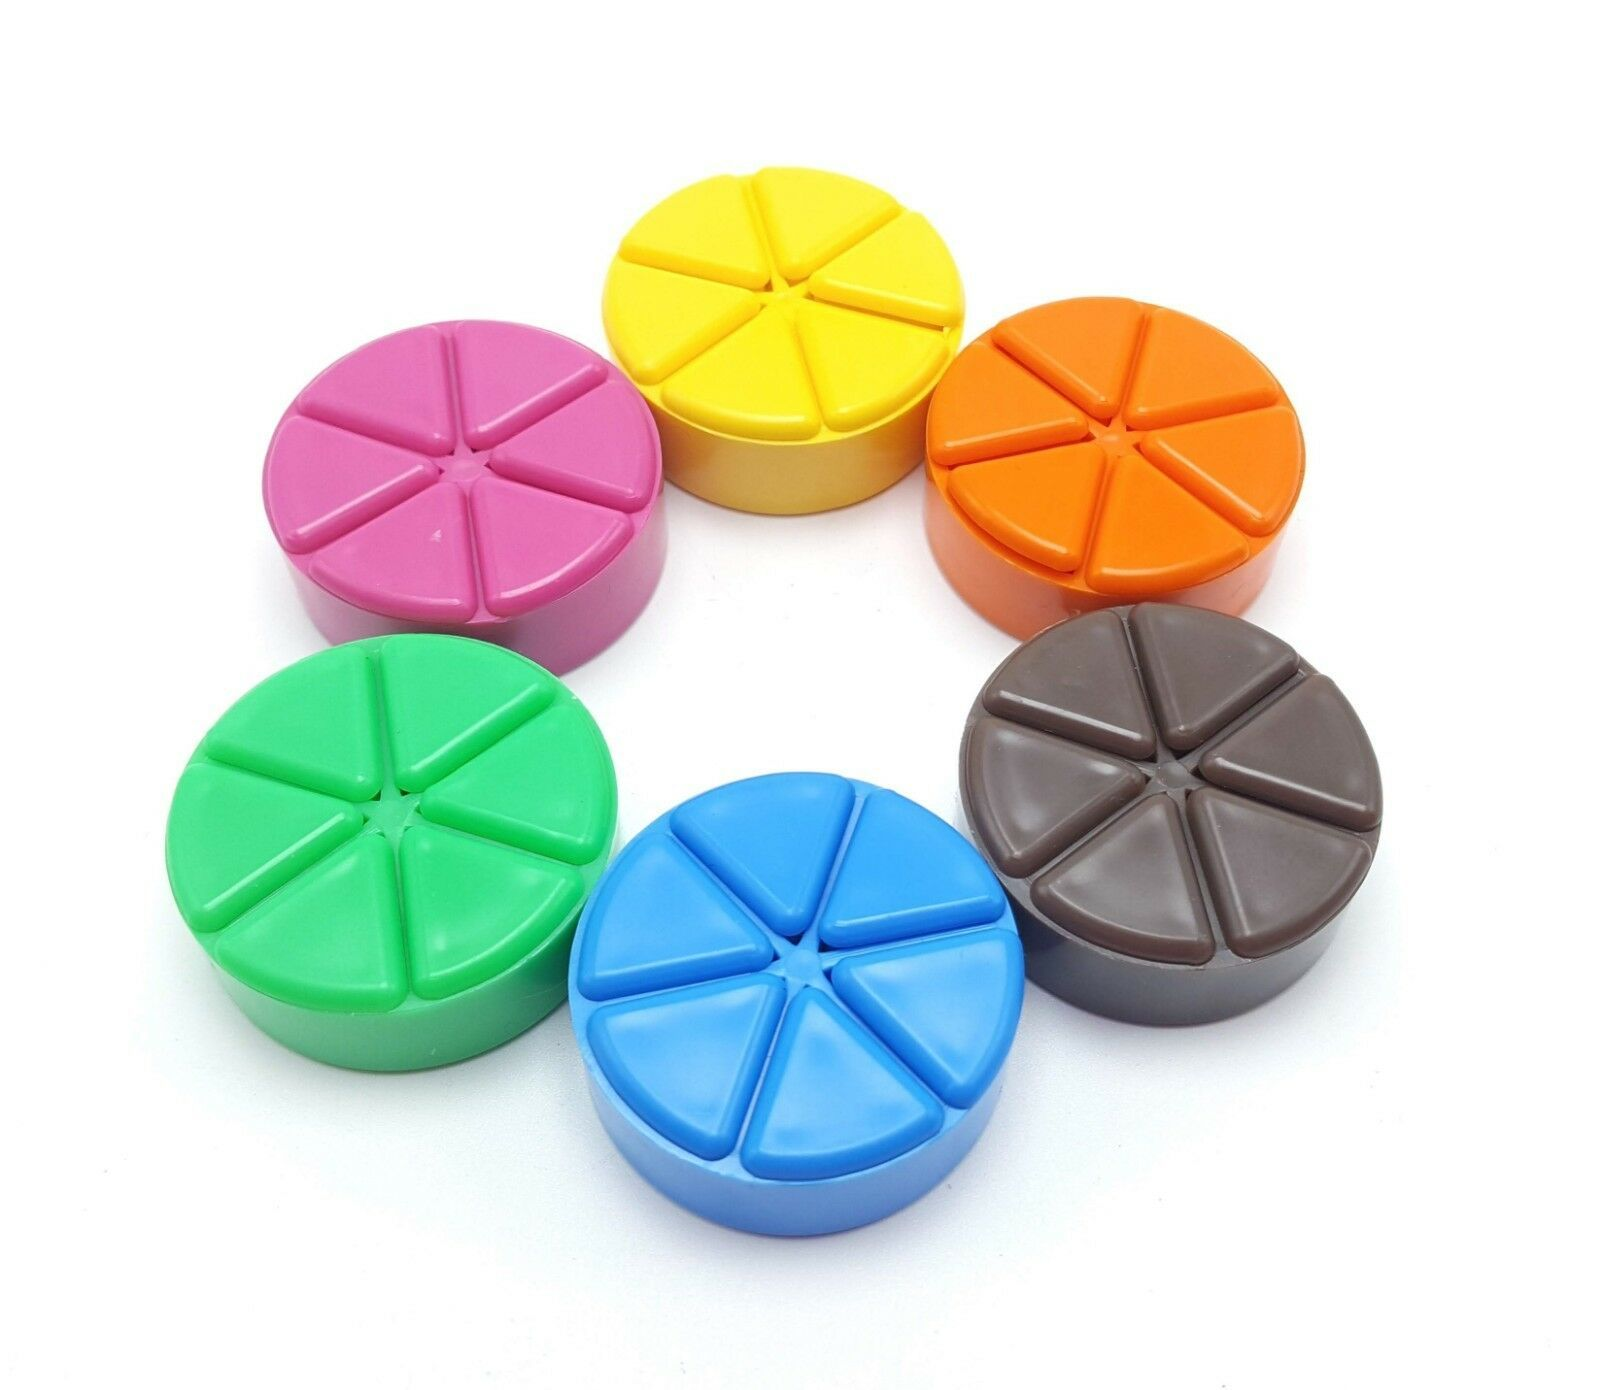 Trivial Pursuit Scoring Pie Wedge Replacement Game Token Pawn Set - $5.99